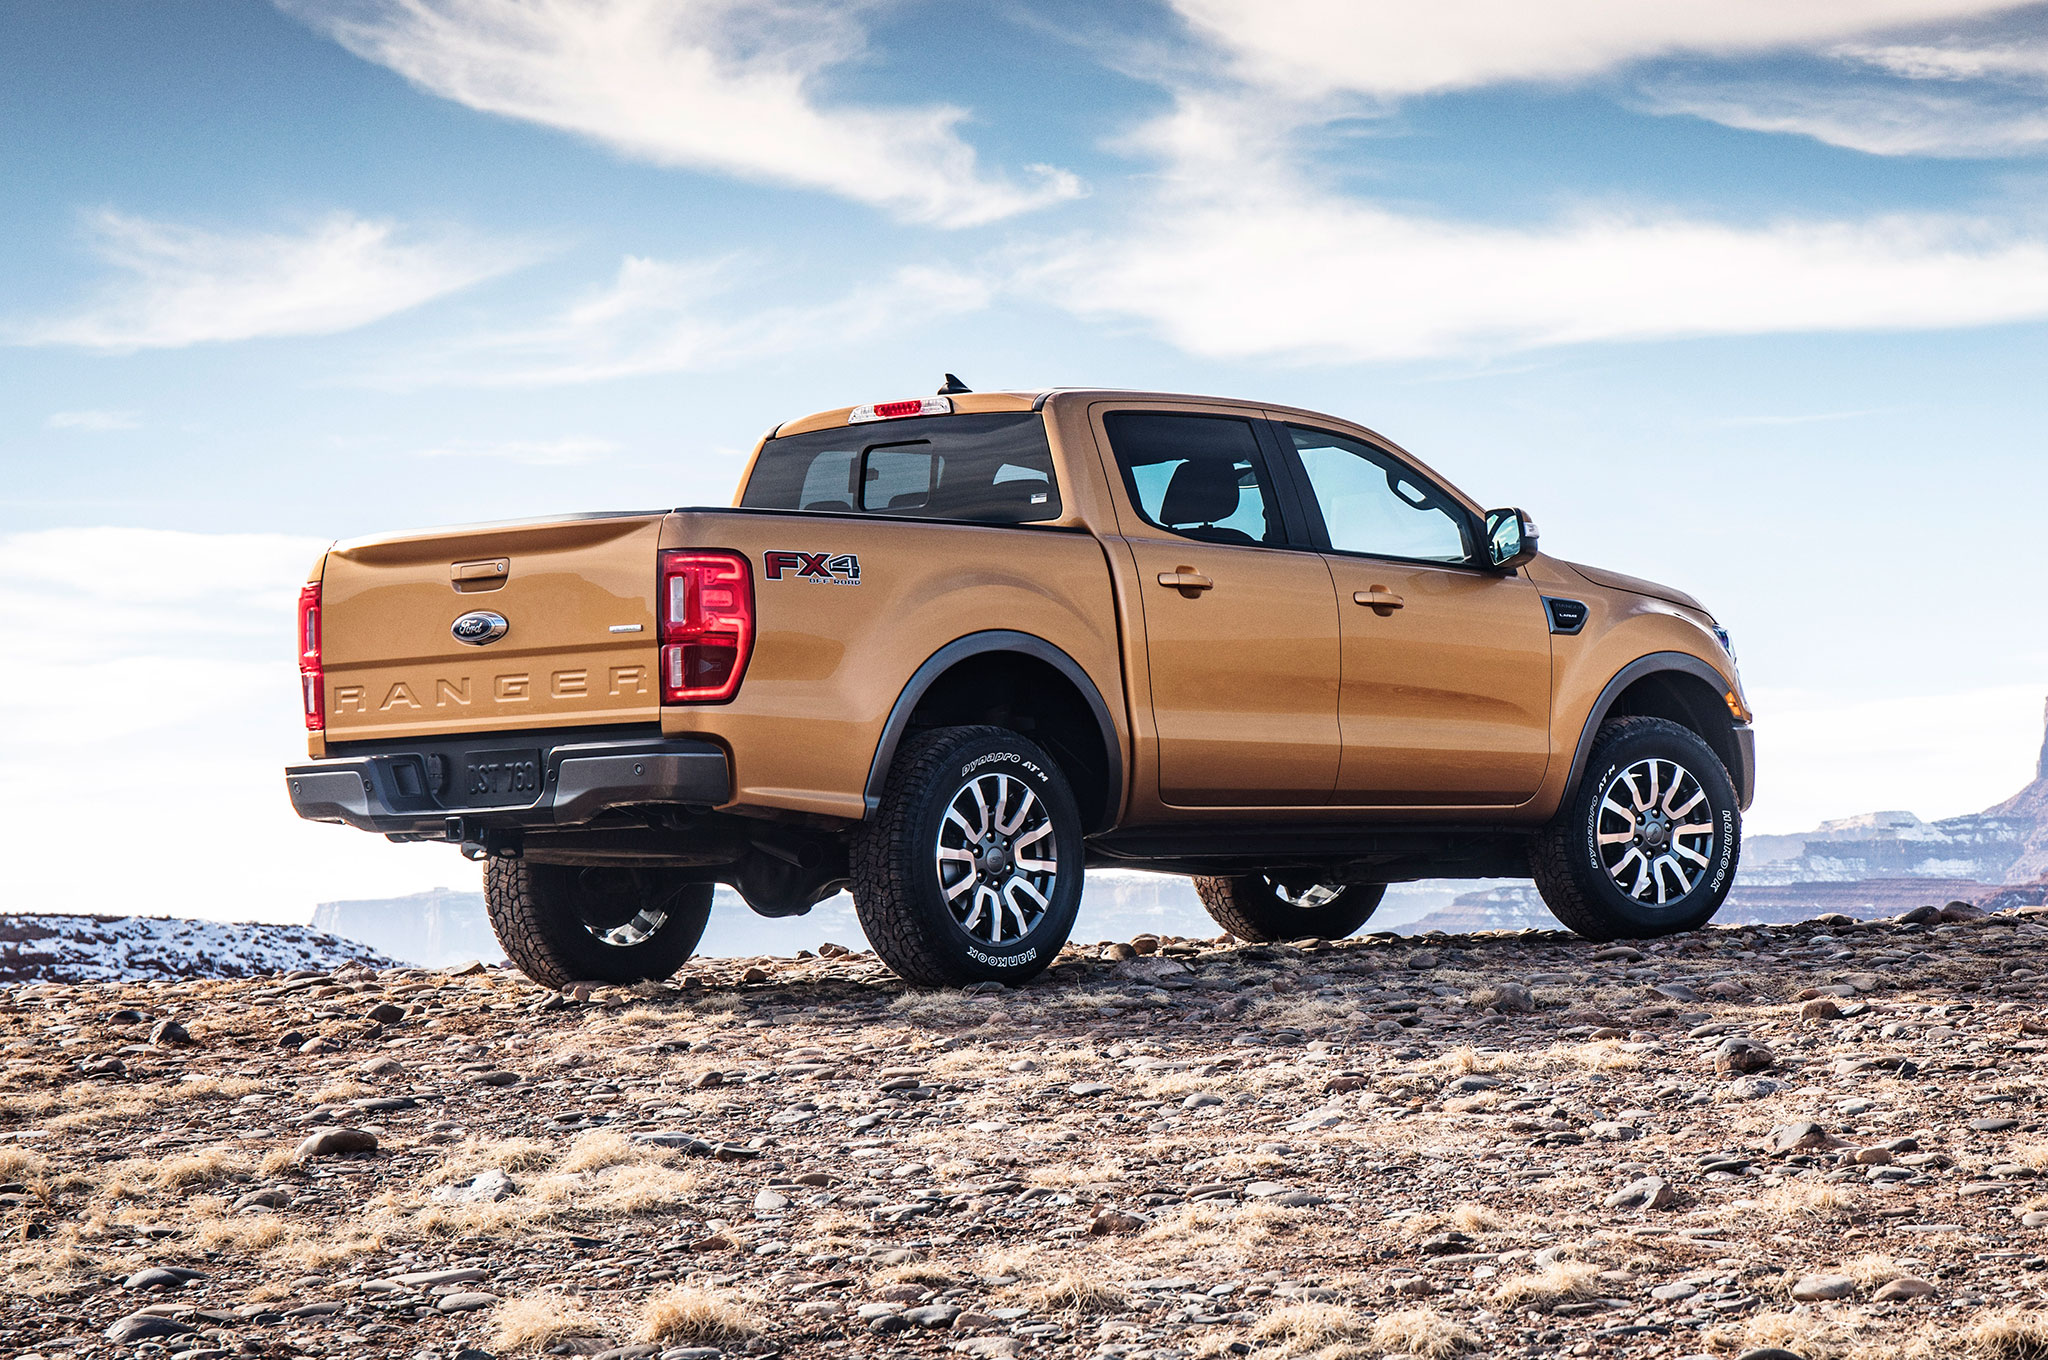 Is This The Next Generation Ford Ranger Signs Point To Yes